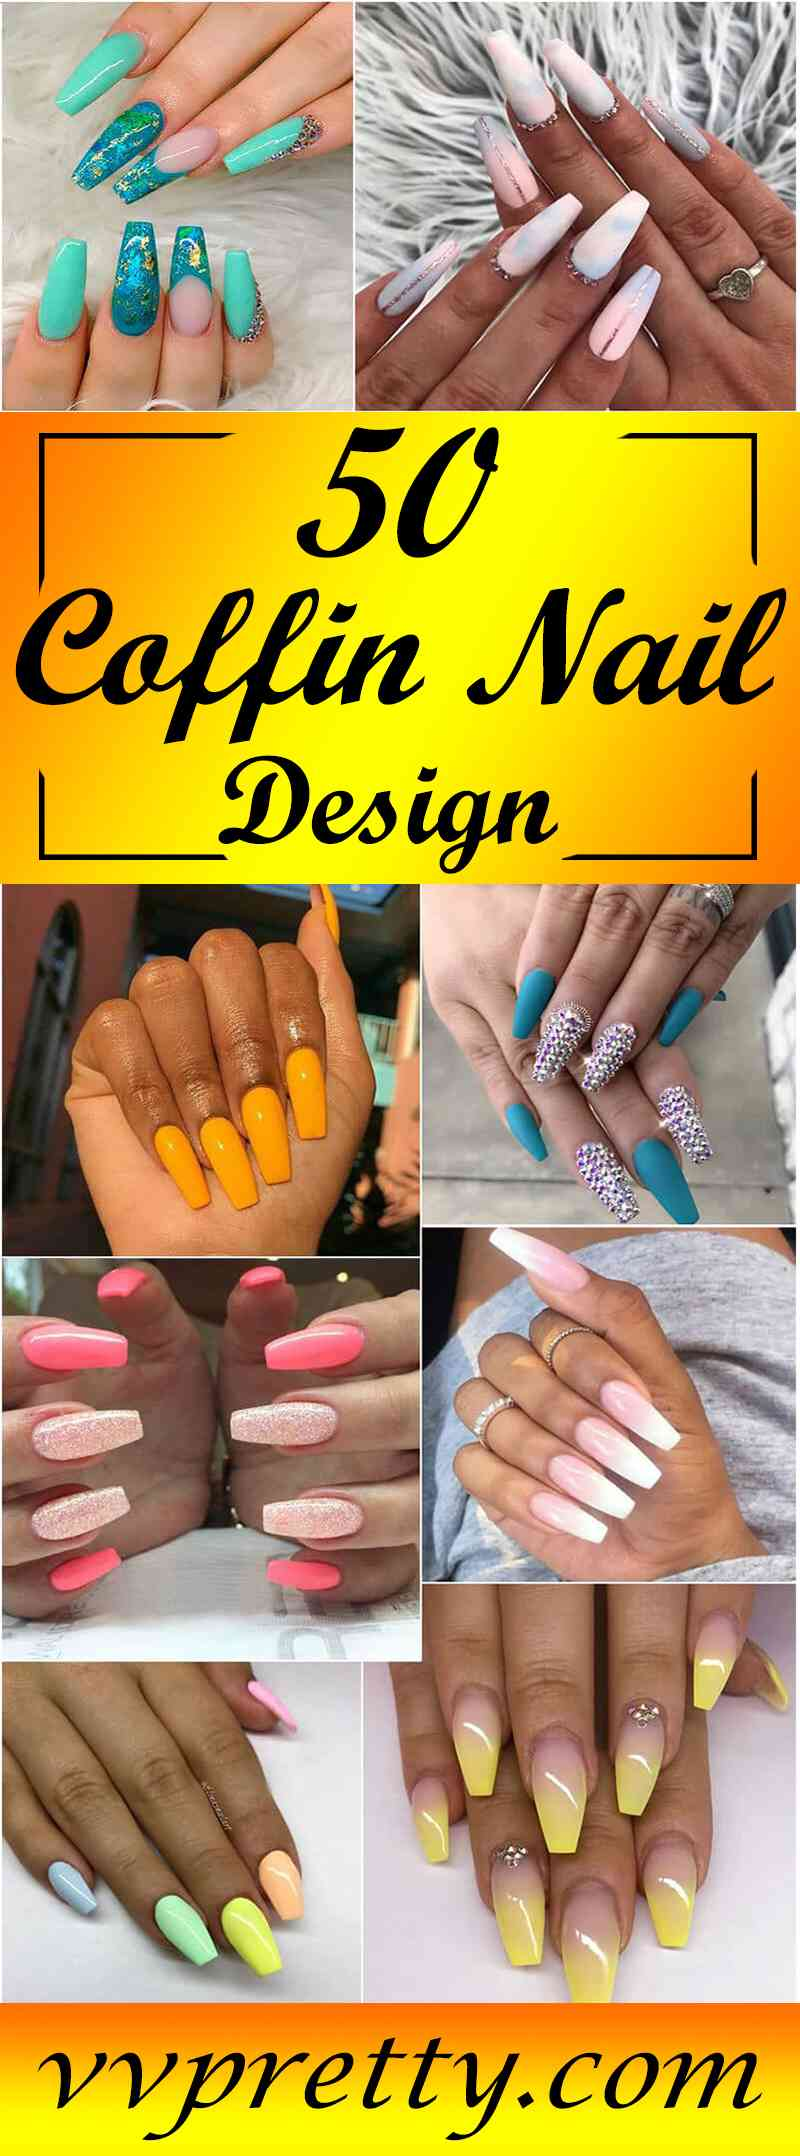 Best Coffin nails Design Ideas